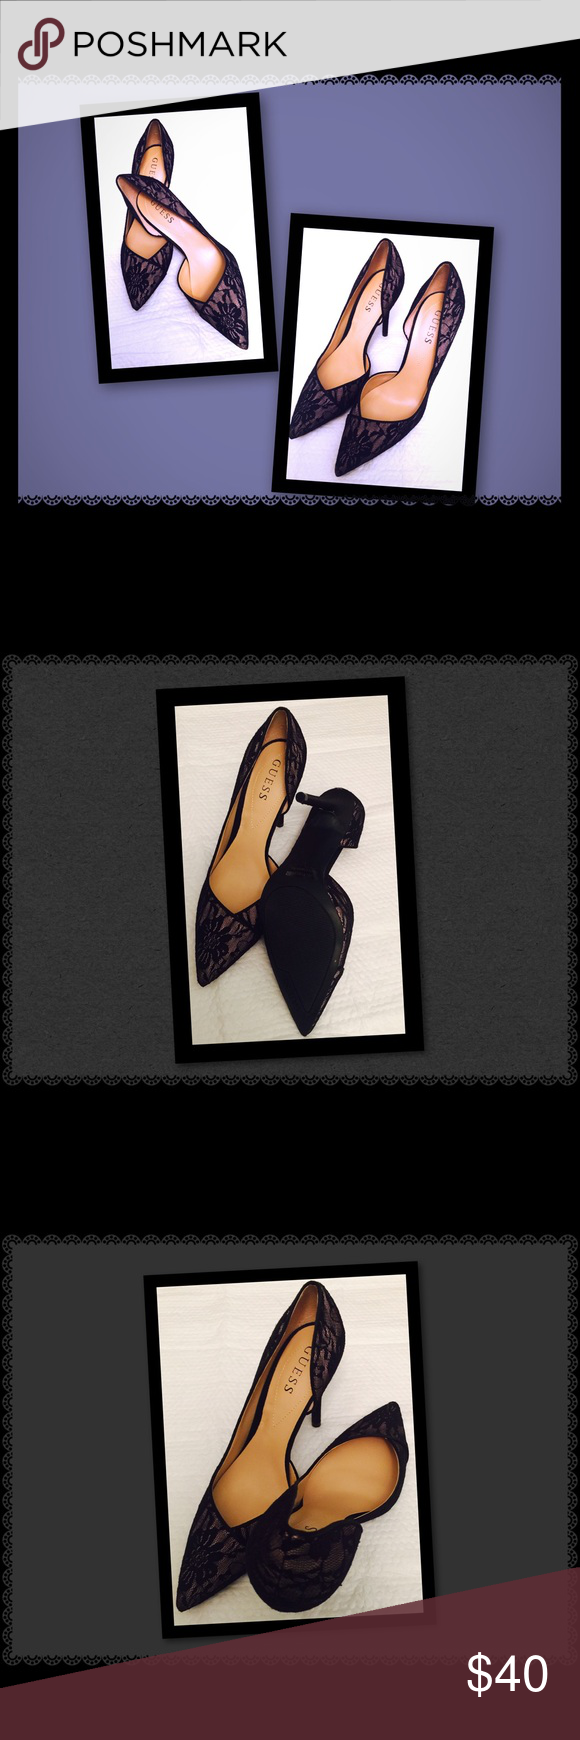 """Guess D'Orsay pumps Black lace over nude. D'Orsay style . Perfect height 4"""" goes with everything , skinny jeans , pencil skirt or a dress. Never worn in original box. Guess Shoes Heels"""